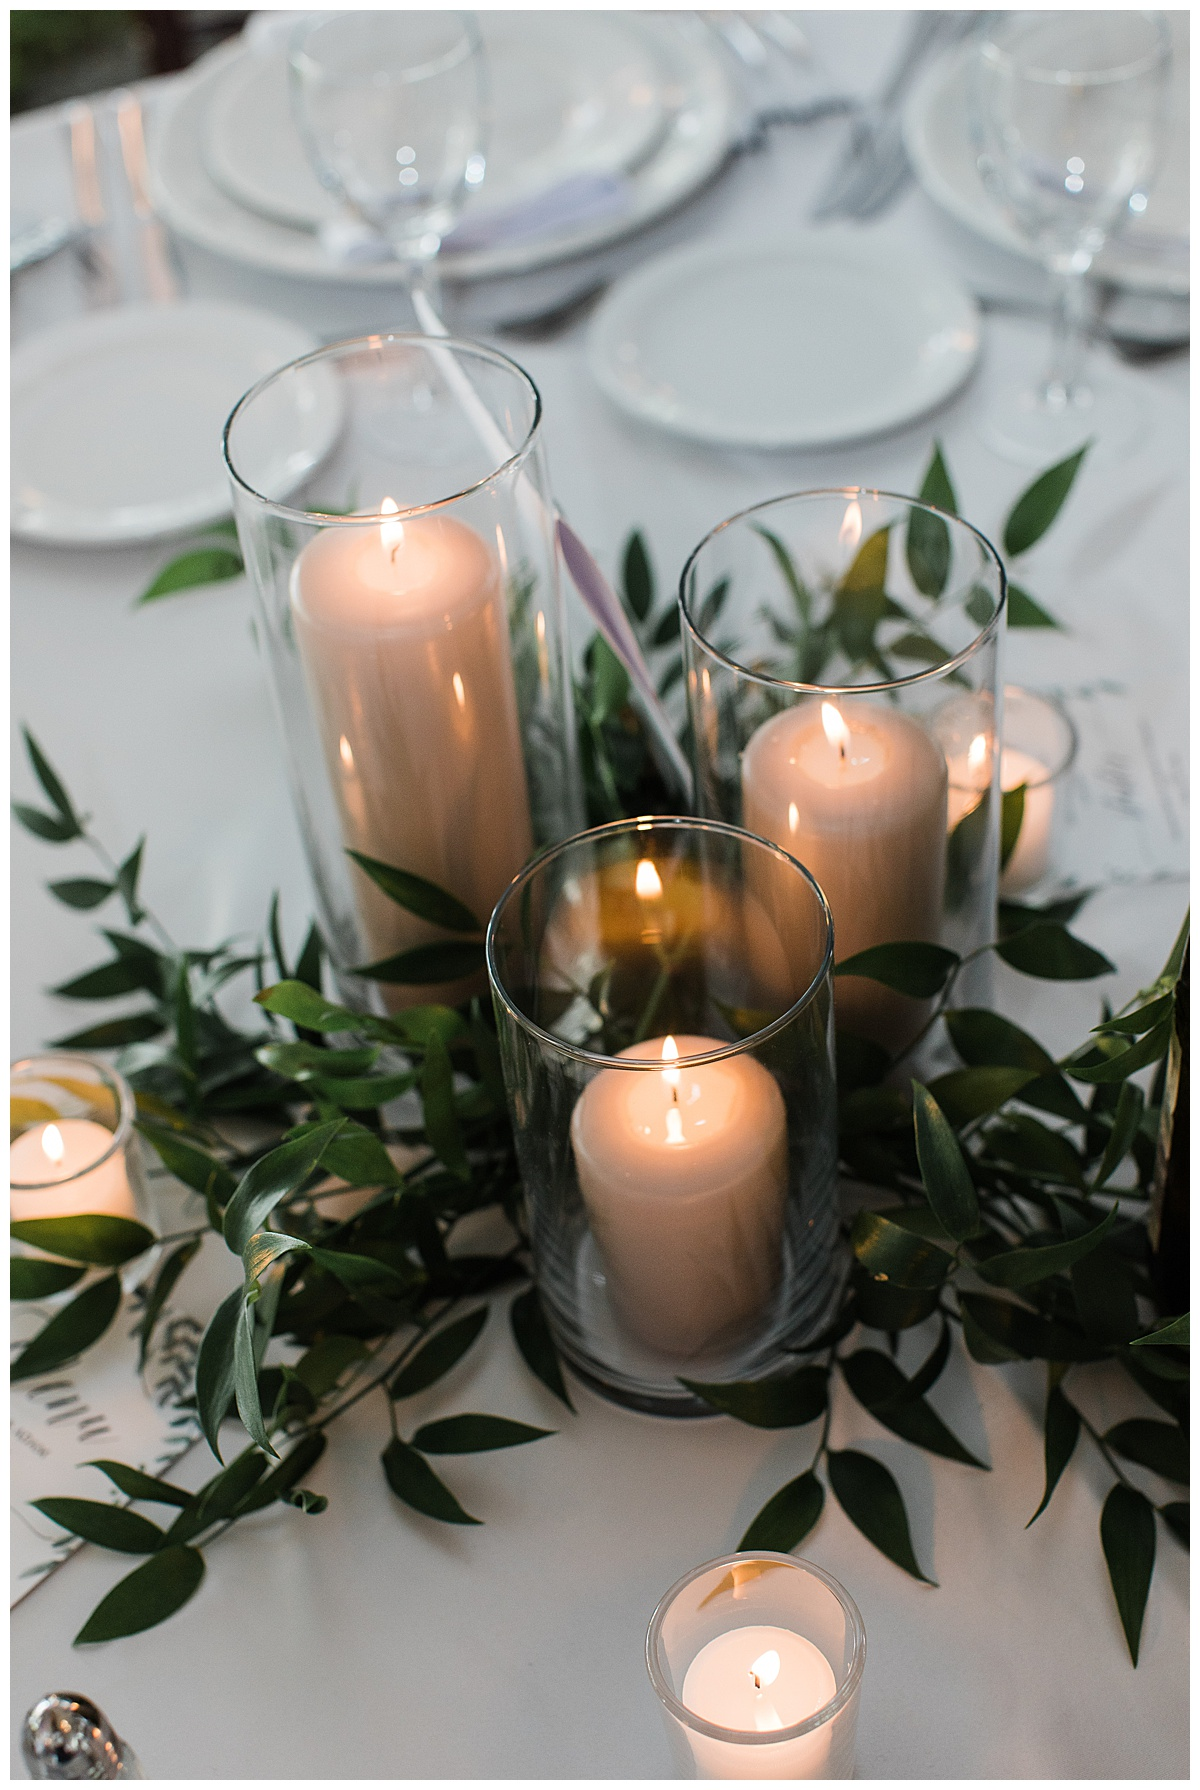 Candle and greenery on wedding reception table  3photography